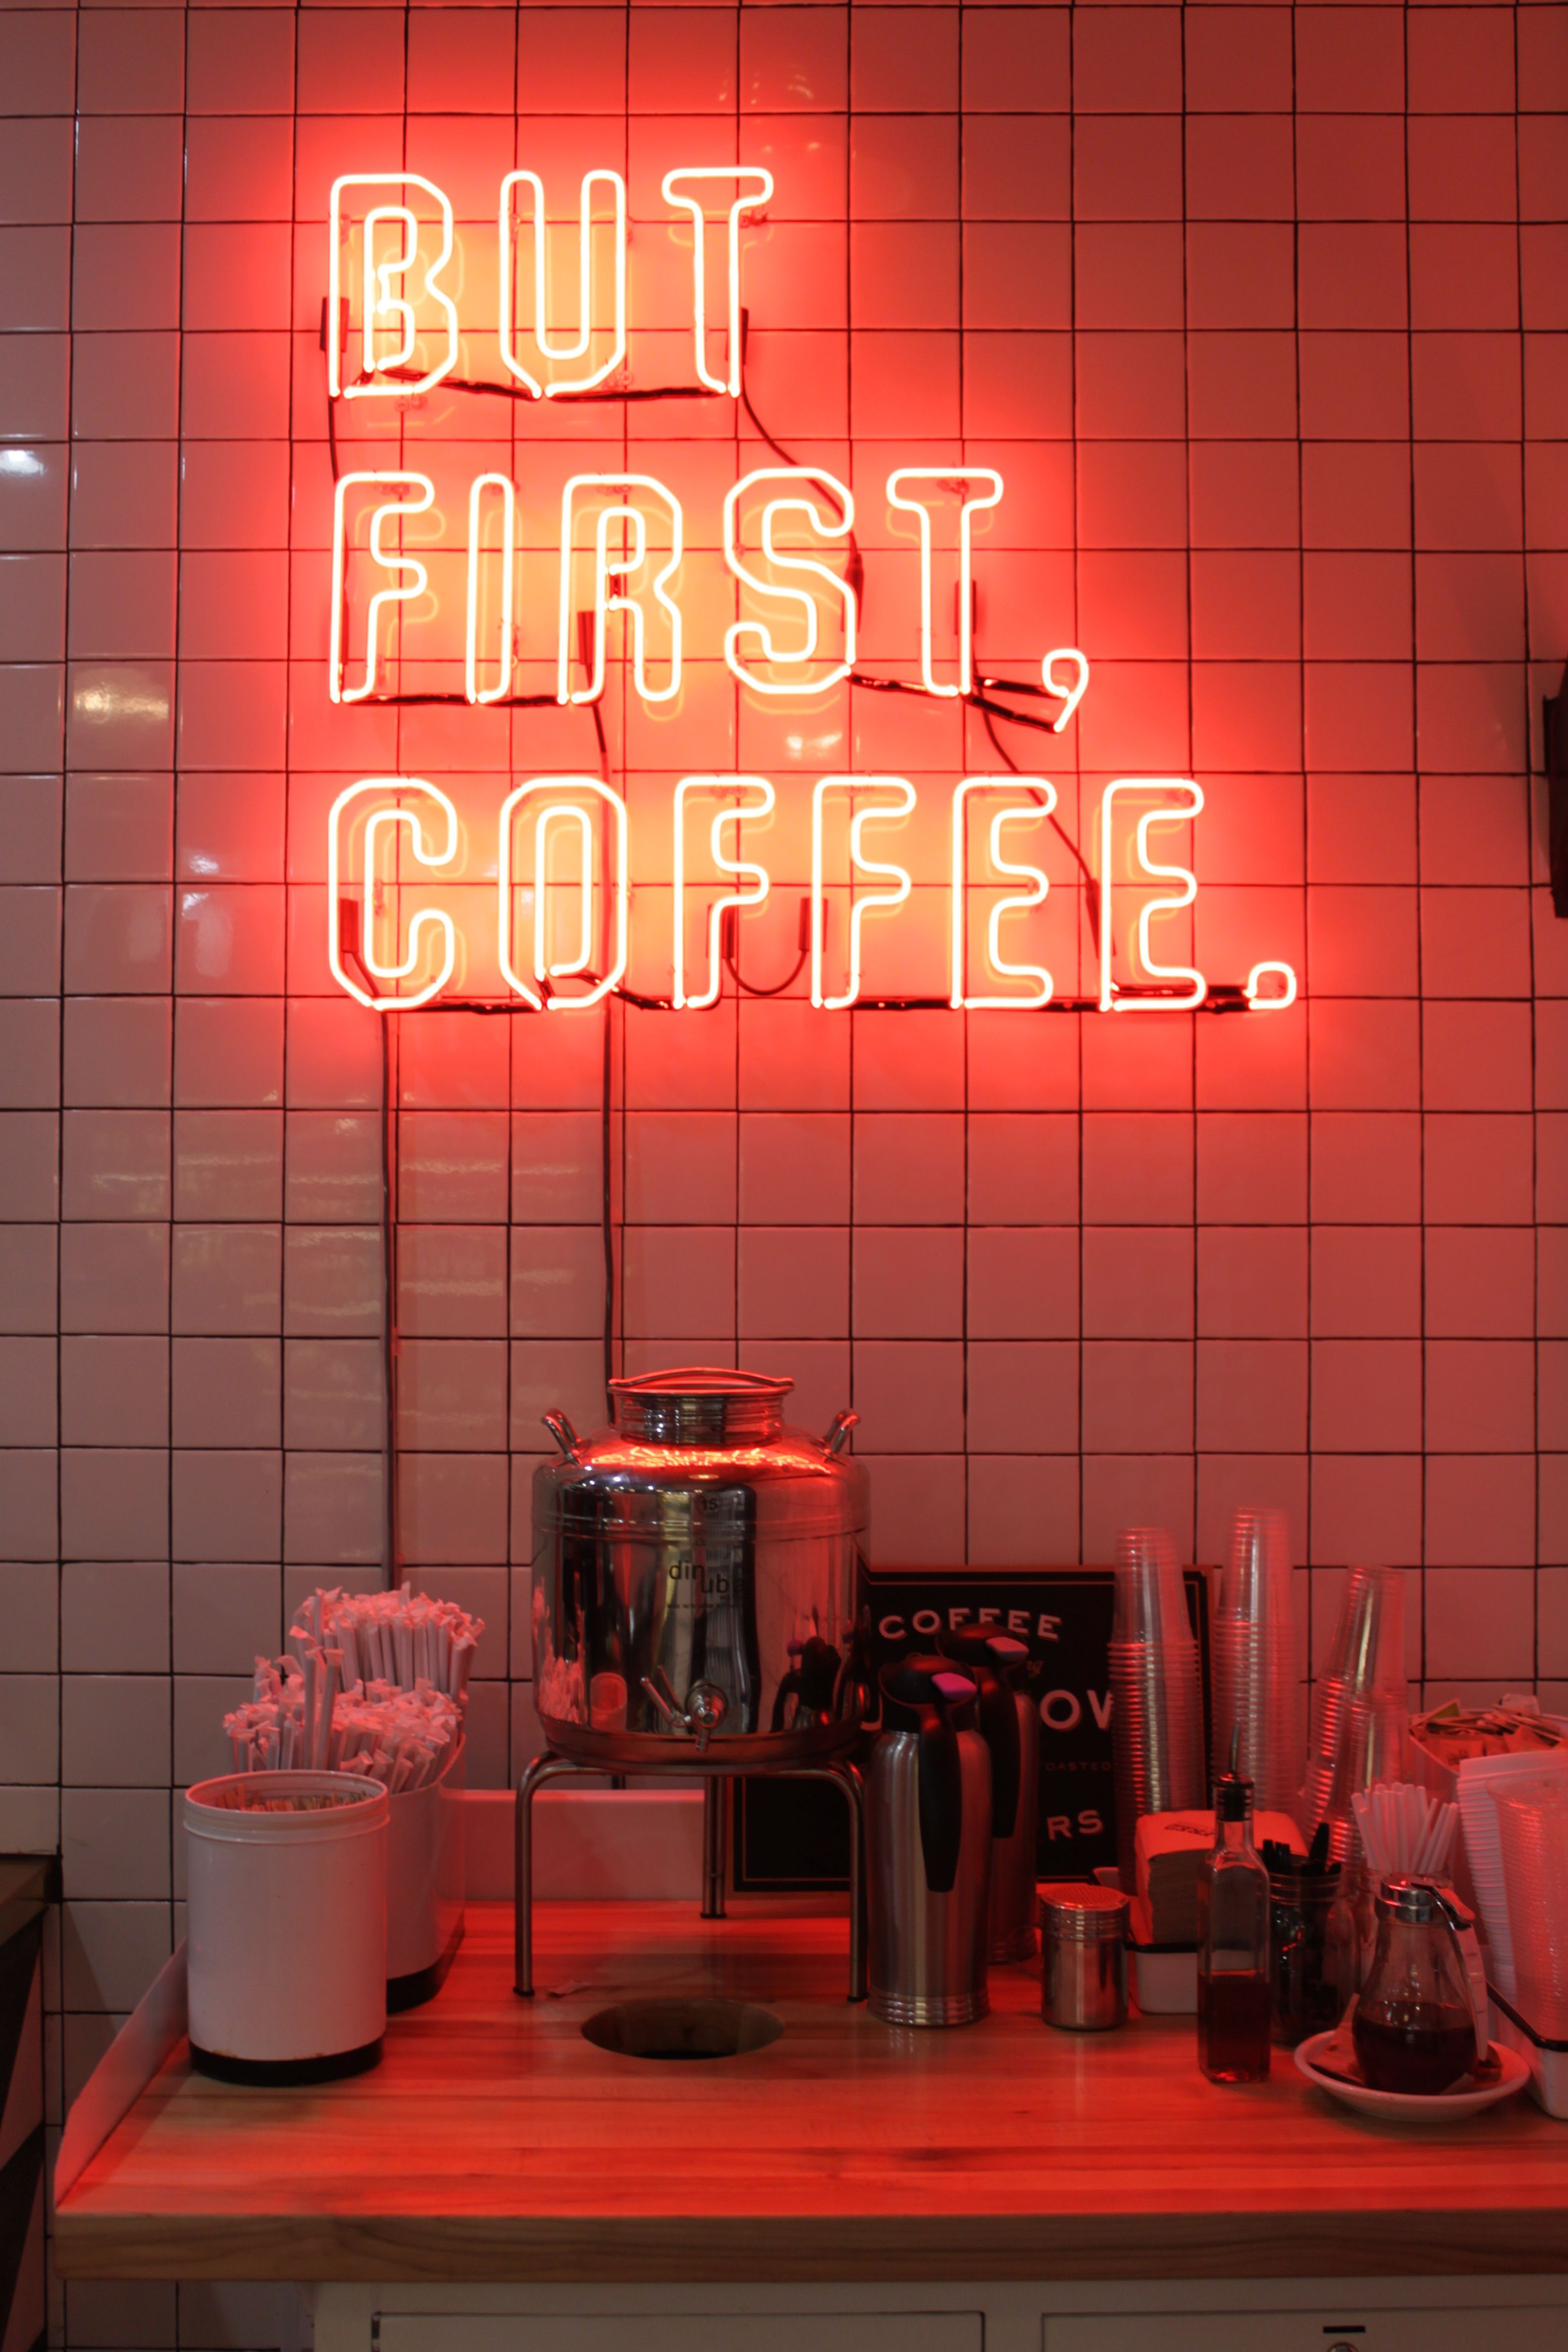 But first coffee | Neon signs, Neon wallpaper, Neon light ...